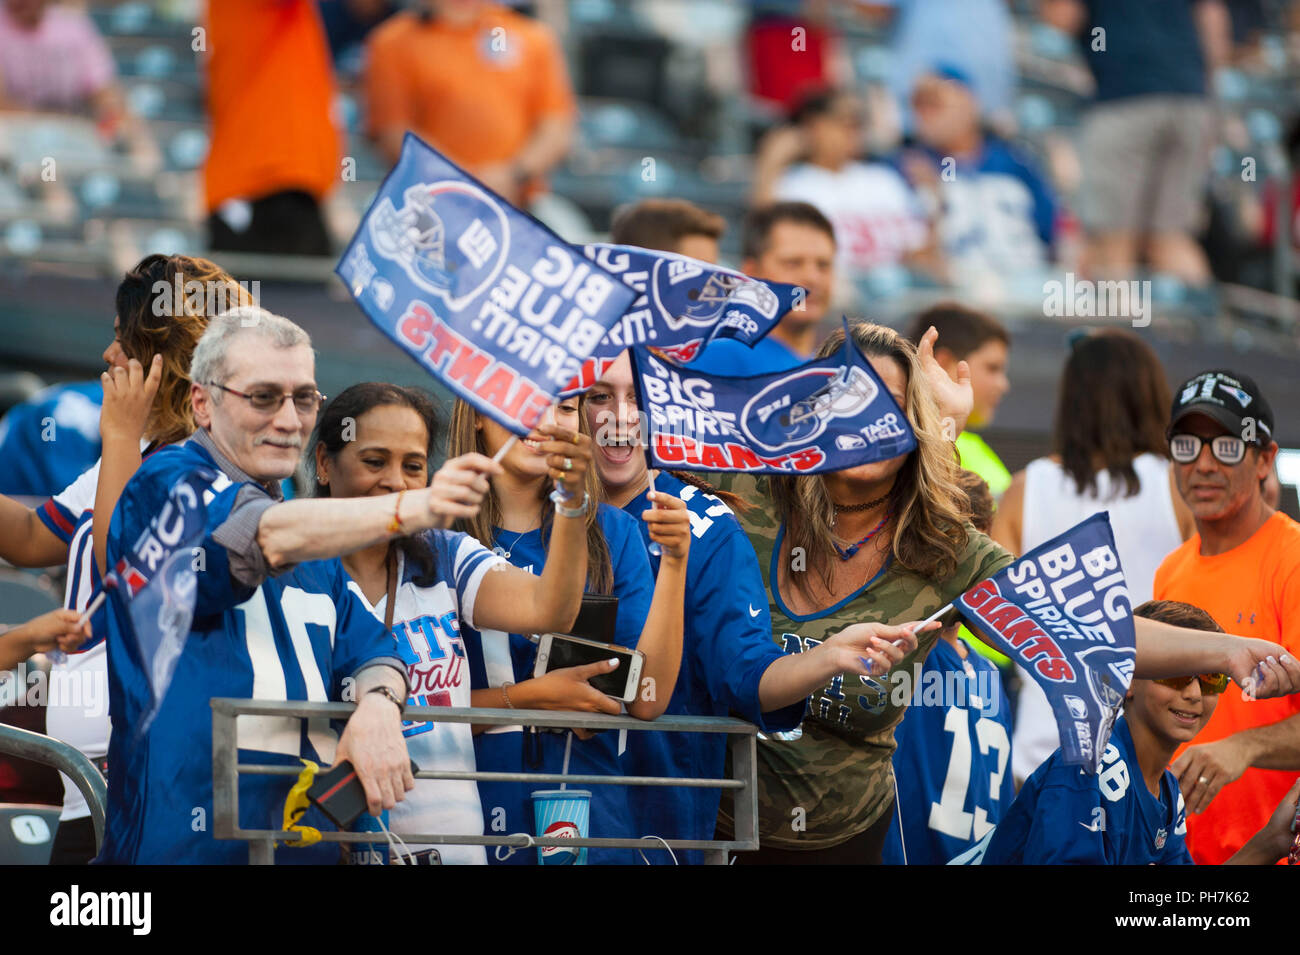 August 31, 2018 - East Rutherford, New Jersey, U.S. - New York Giants fans during a preseason game between the New England Patriots and the New York Giants at MetLife Stadium in East Rutherford, New Jersey. Duncan Williams/CSM - Stock Image